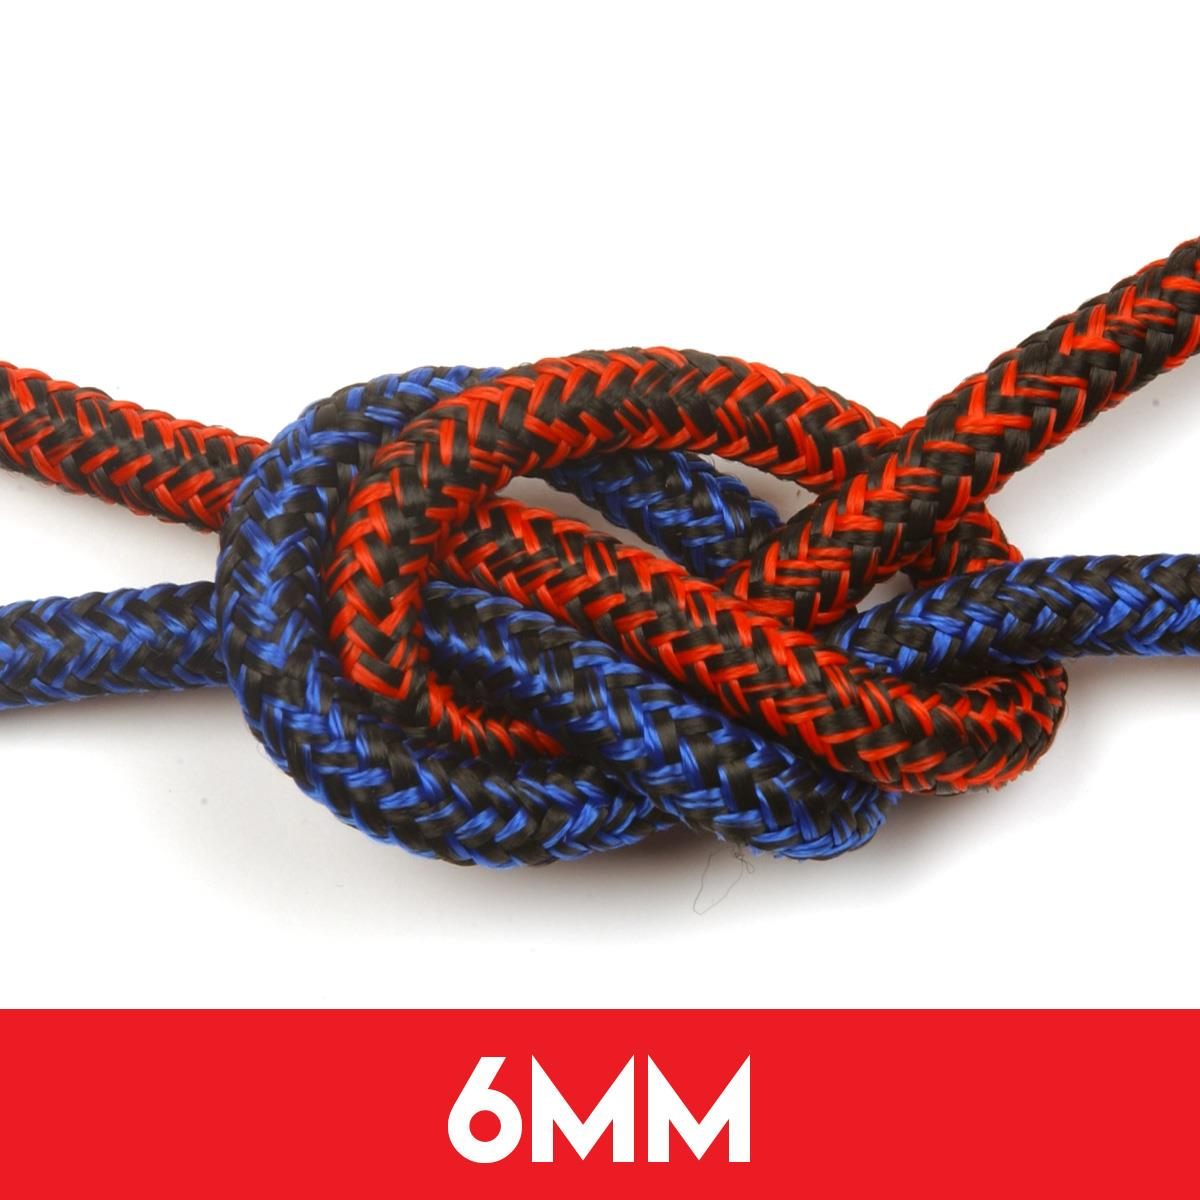 6mm Kingfisher Evo Sheet Rope